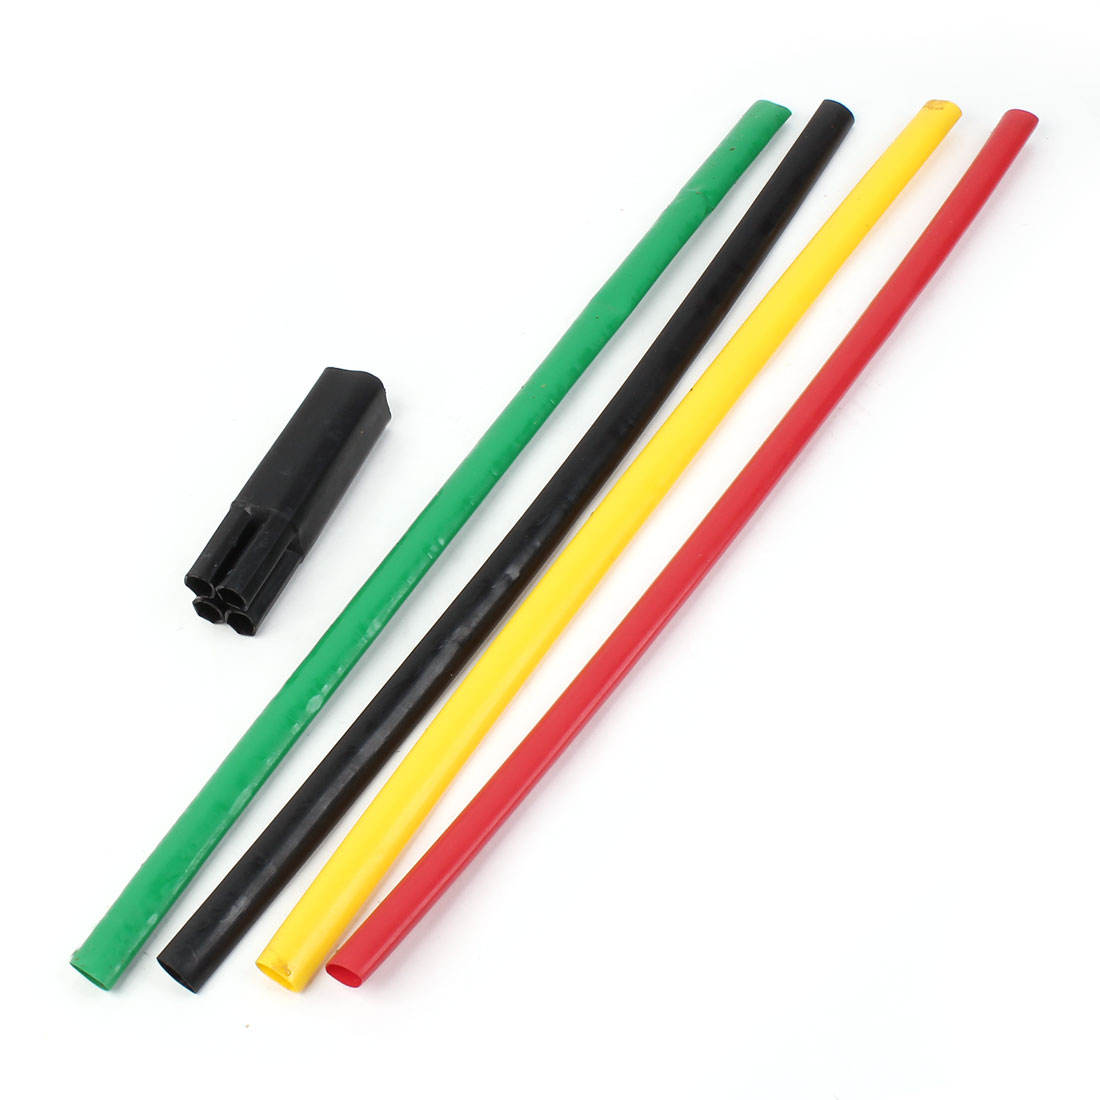 1KV 10-16mm2 Cable Heat Shrink Shrinkable Tubing Tubes + Breakout Boot